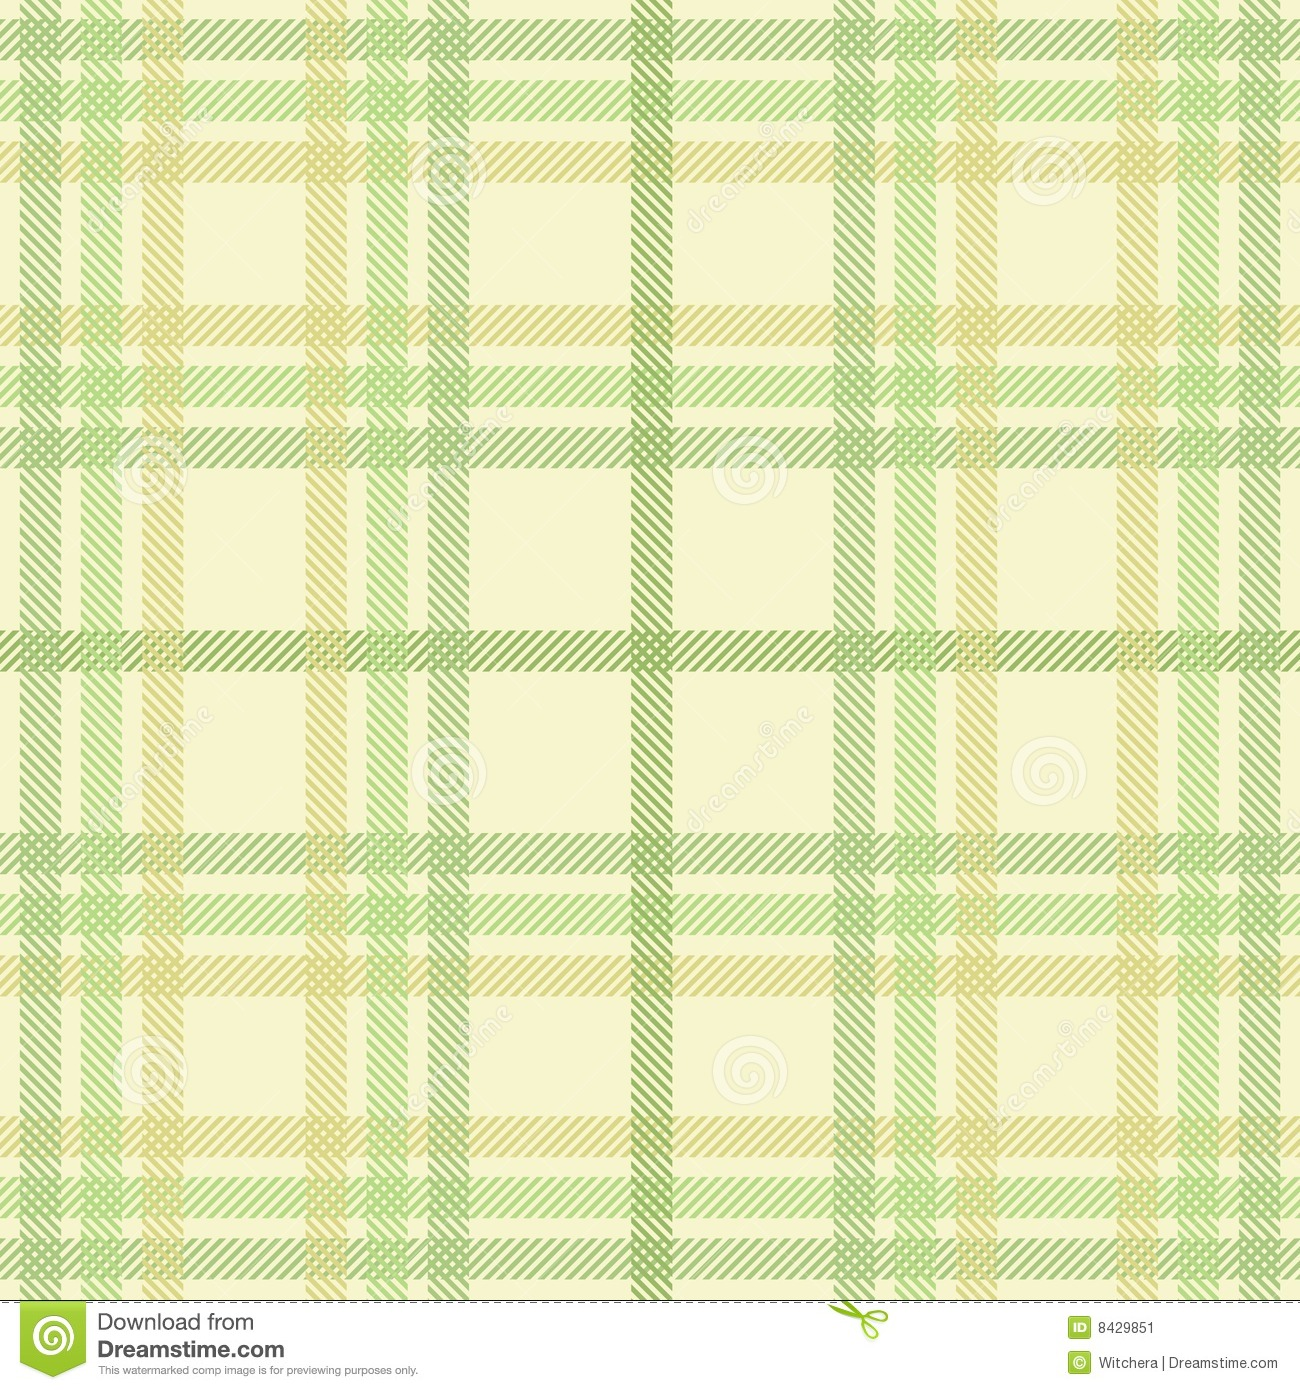 Spring plaid texture, vector pattern